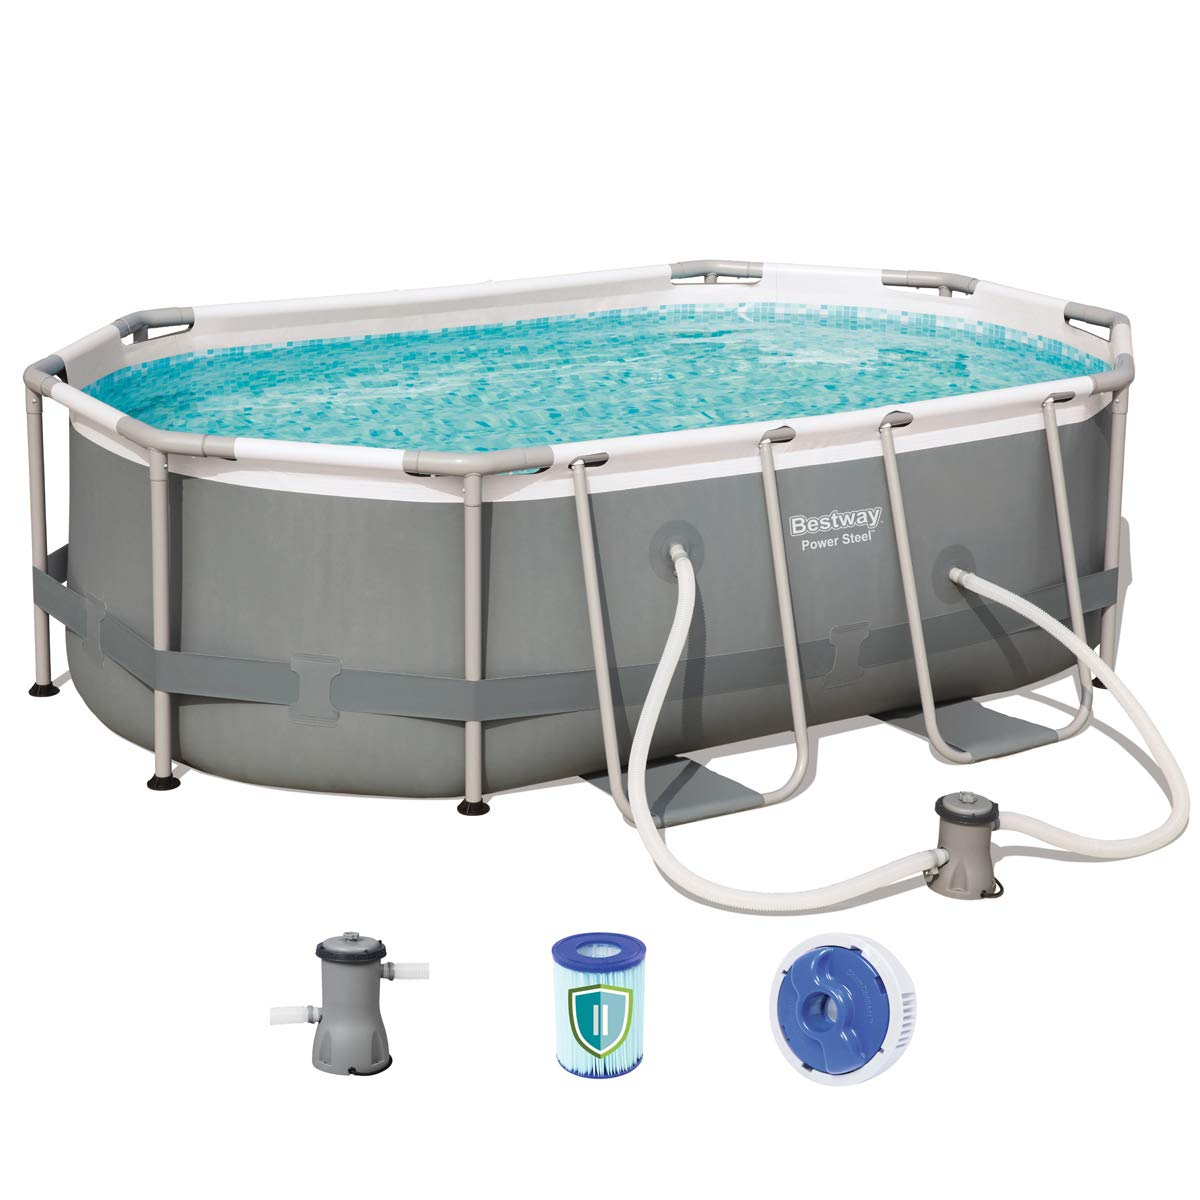 Piscina tubular ovalada Besway Power Steel 3668 litros – 300 x 200 ...